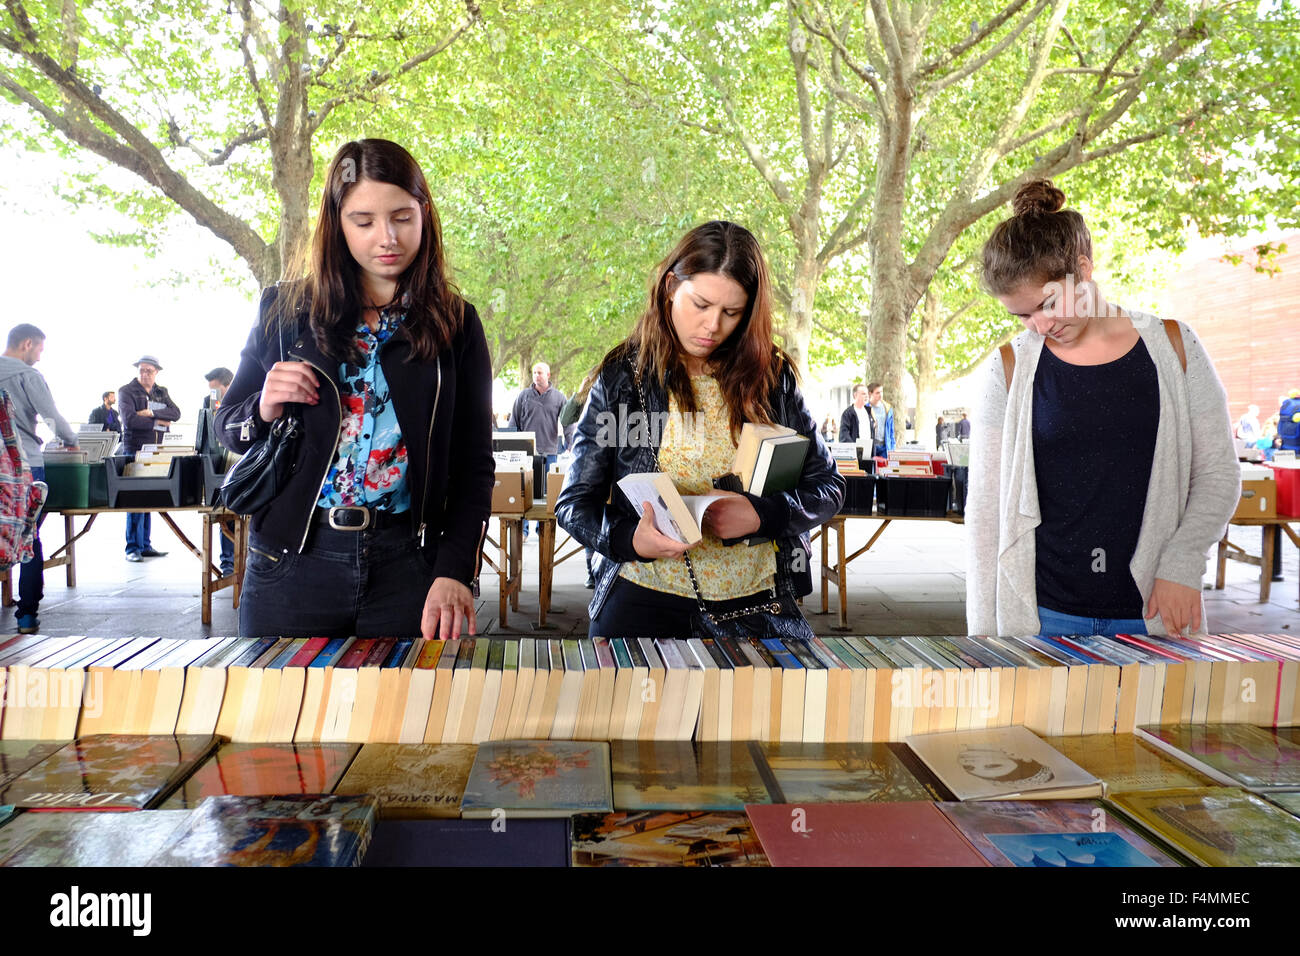 Three Girls Browsing at Southbank Centre's Book Market - Stock Image